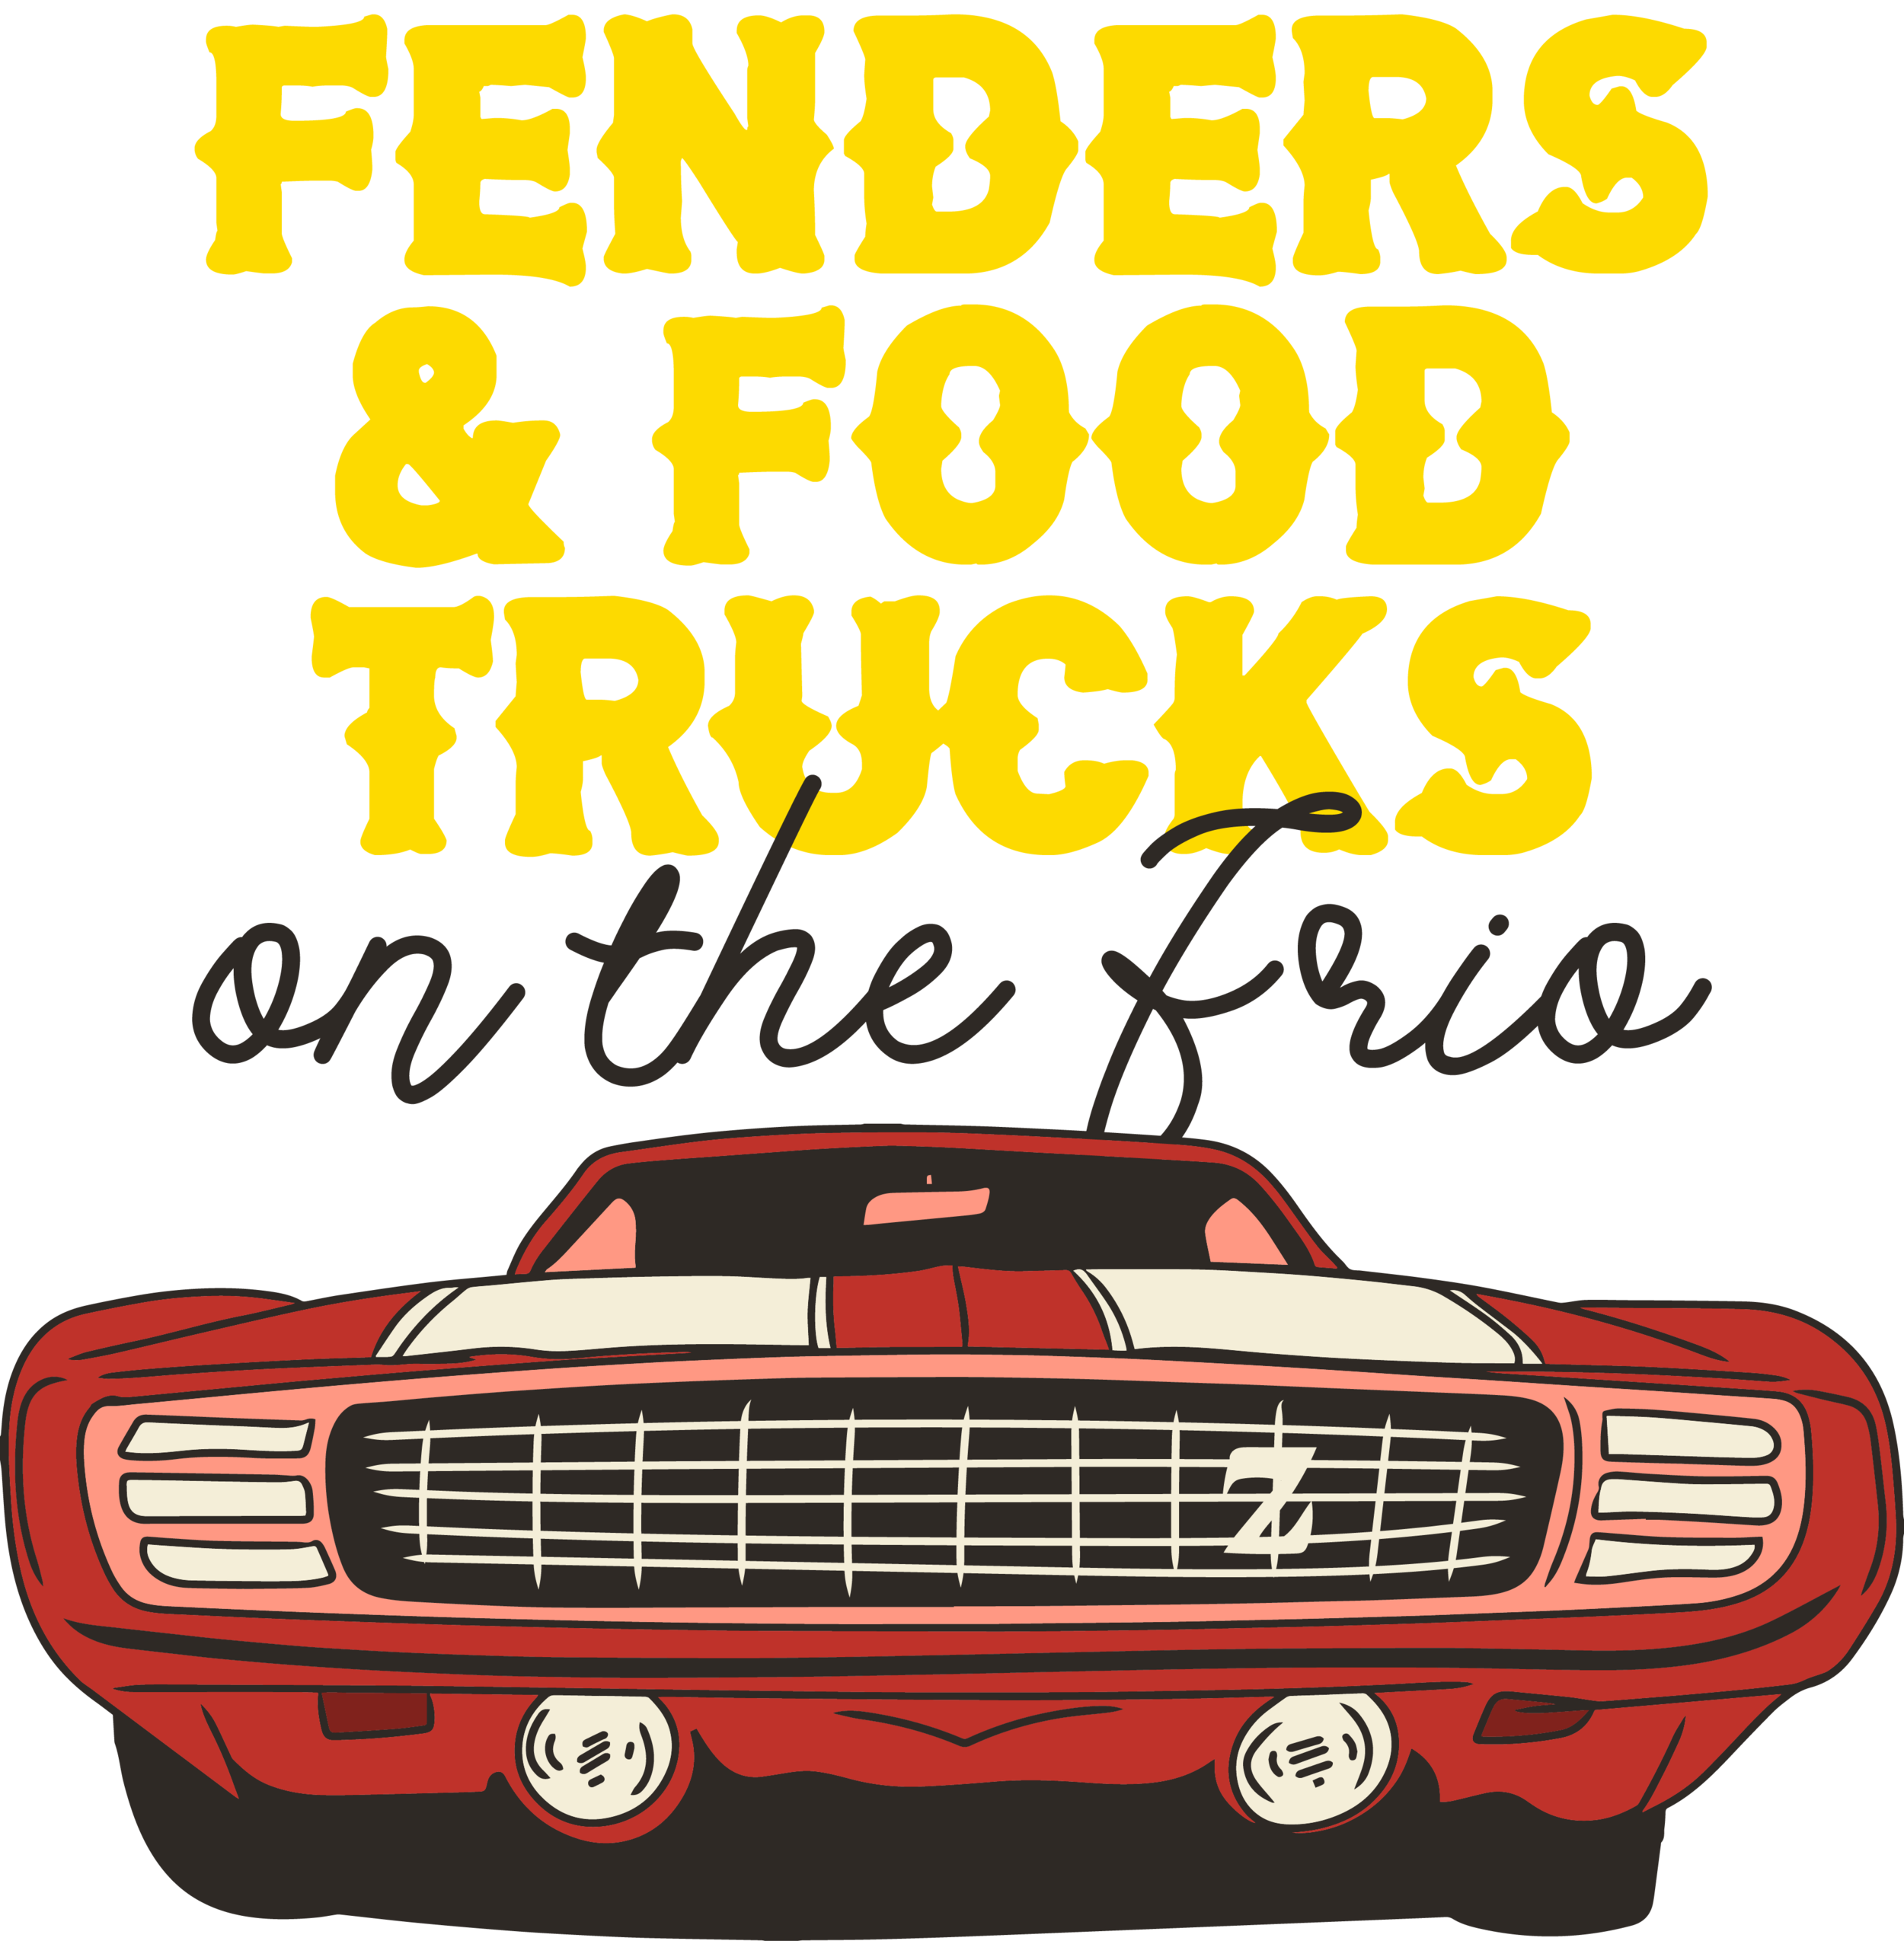 2nd Annual -Fenders and Food Trucks on the Frio - Andy's on River Road, Concan, Tx.Saturday, April 20th, 2019